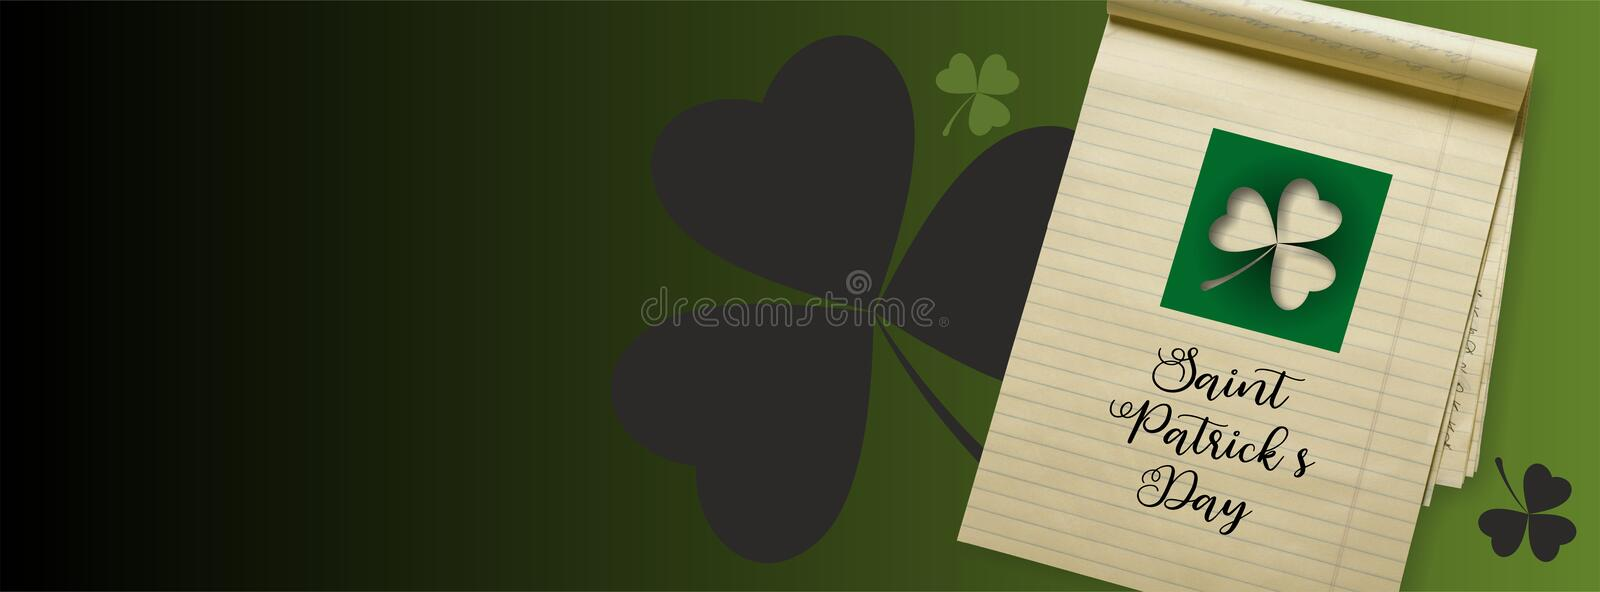 Saint Patricks Day banner - Facebook Covers -. Saint Patricks Day - Facebook Covers with clover leaves, old sheet of notes and words `Saint Patricks Day royalty free stock images